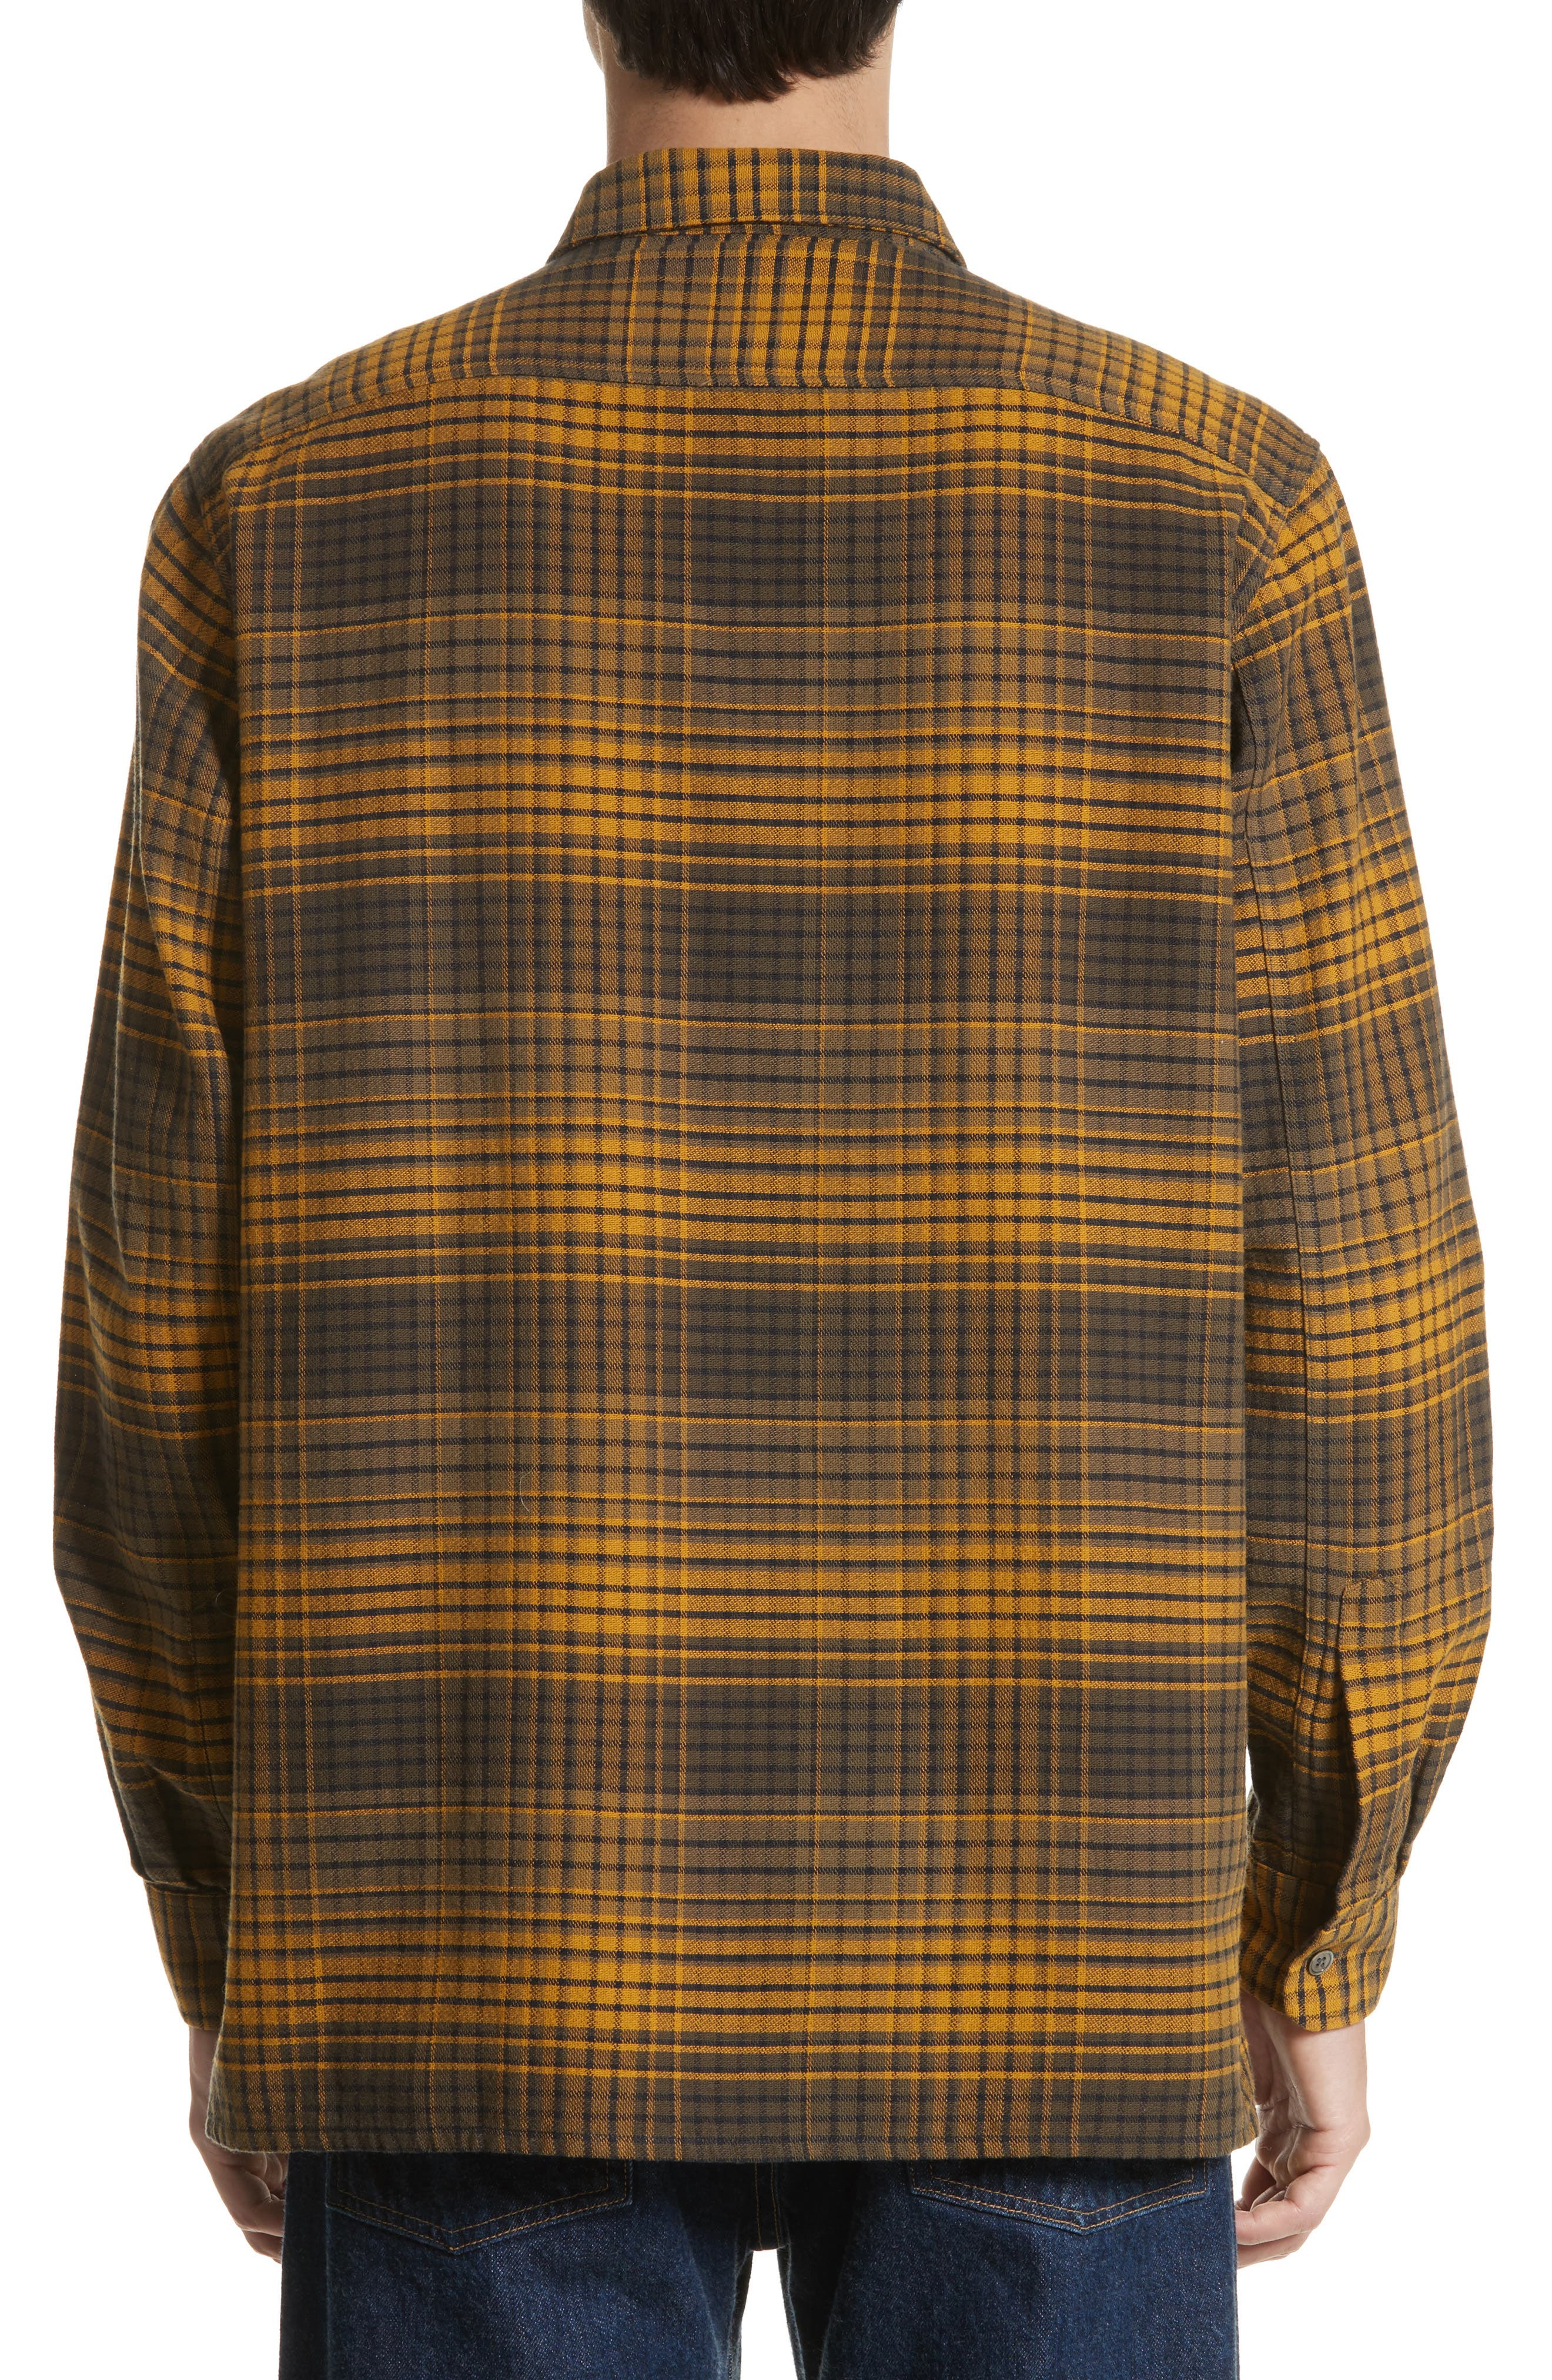 Country Plaid Flannel Shirt,                             Alternate thumbnail 2, color,                             710